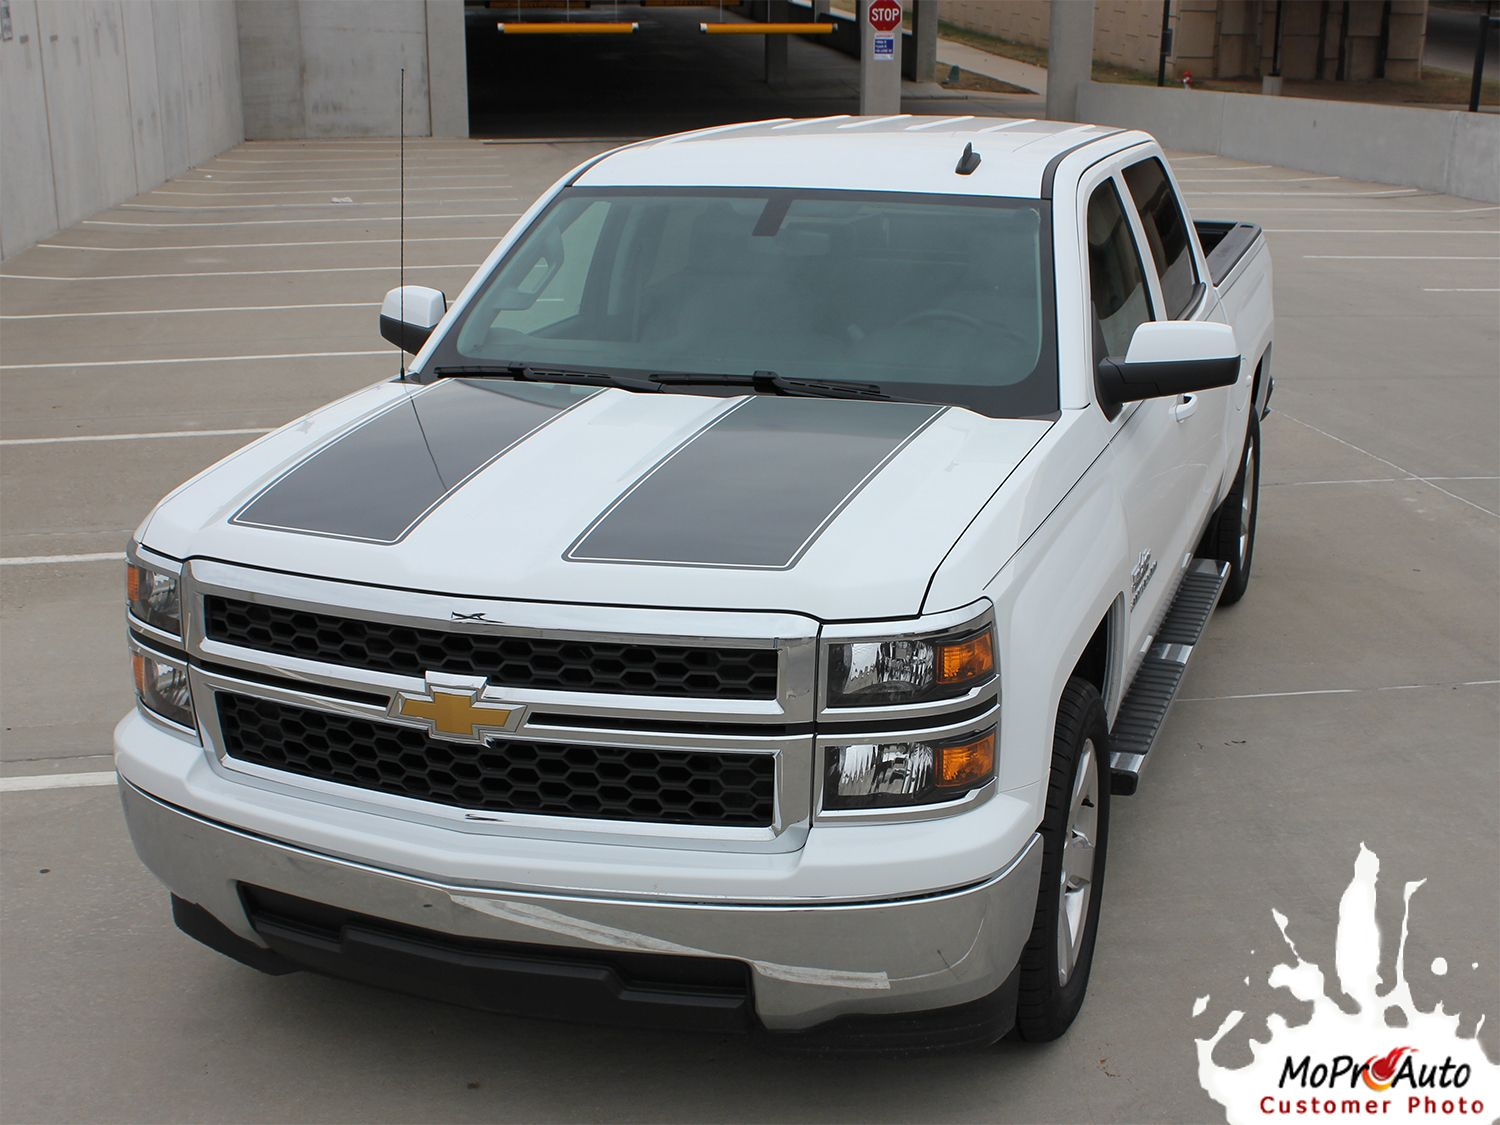 Silverado 2003 chevy silverado 1500 accessories : RALLY 1500 : 2014 2015 Chevy Silverado or GMC Sierra Vinyl Graphic ...